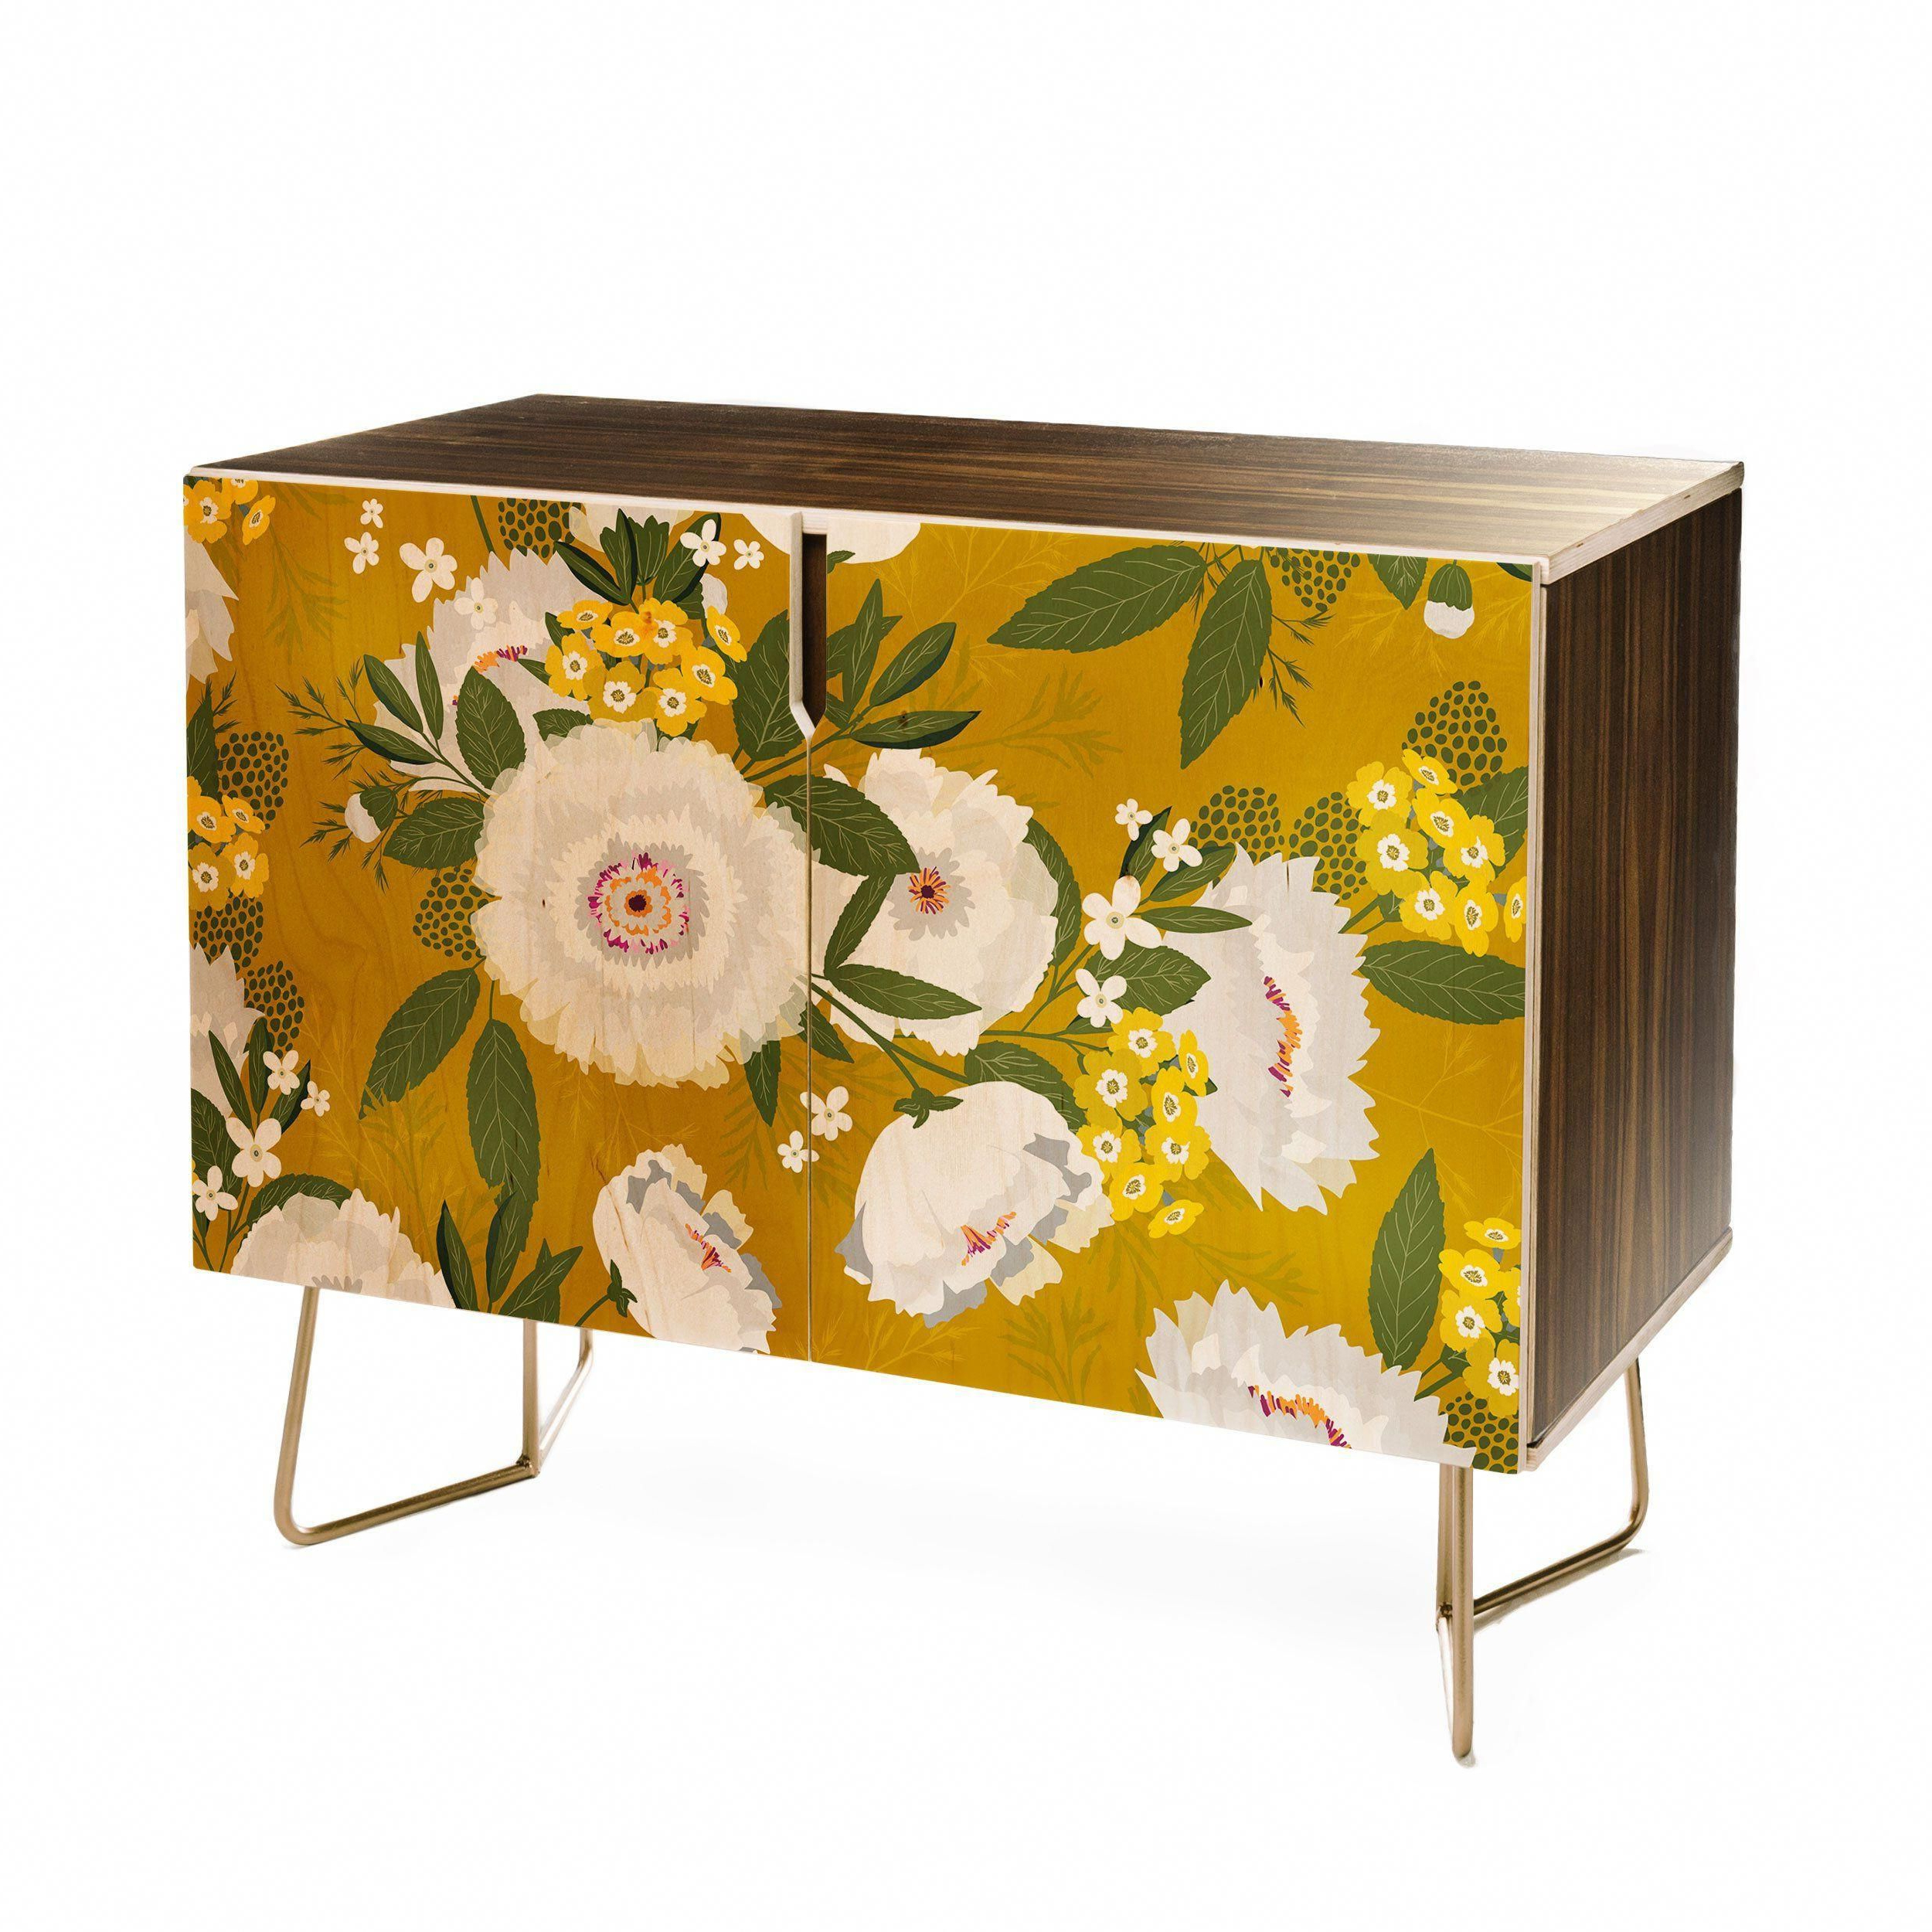 Fleurette Midday Credenza Iveta Abolina With Floral Blush Yellow Credenzas (View 16 of 20)